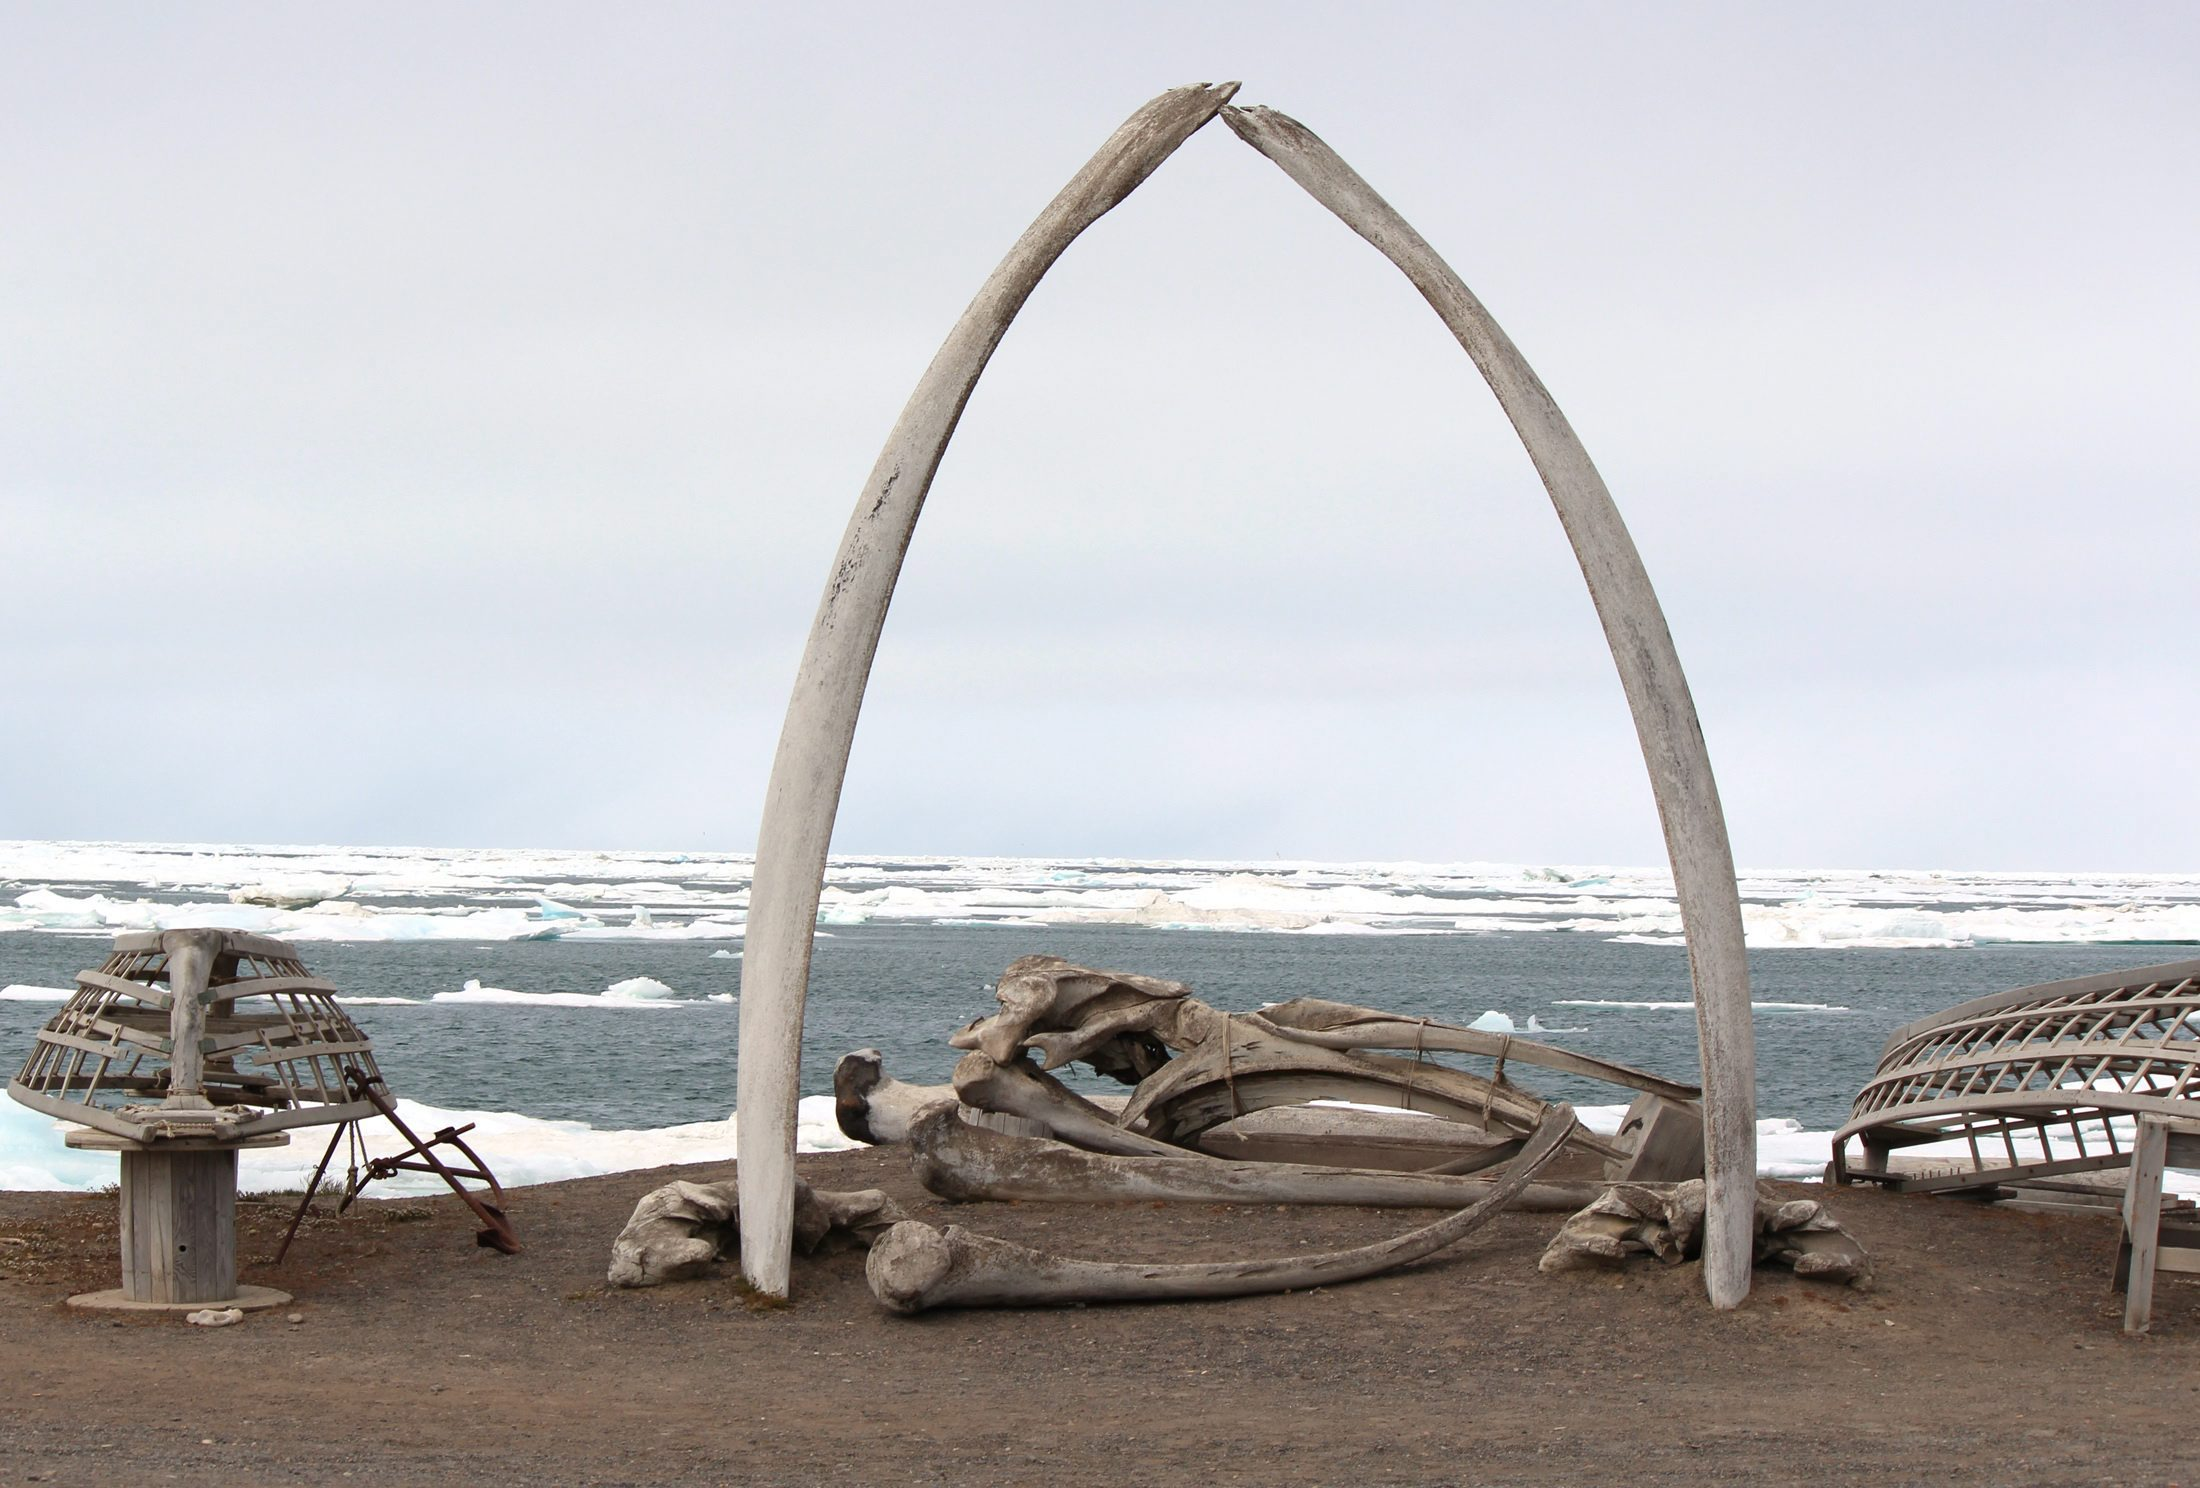 A whalebone arch sits on the Barrow, Alaska shoreline in this file photo as ice floats in the Arctic Ocean beyond. Arctic Alaskan cities like Barrow, Nome and Anchorage posted record-warm temperatures for the entire month of April. .(AP Photo/Kodiak Daily Mirror, Nicole Klauss)